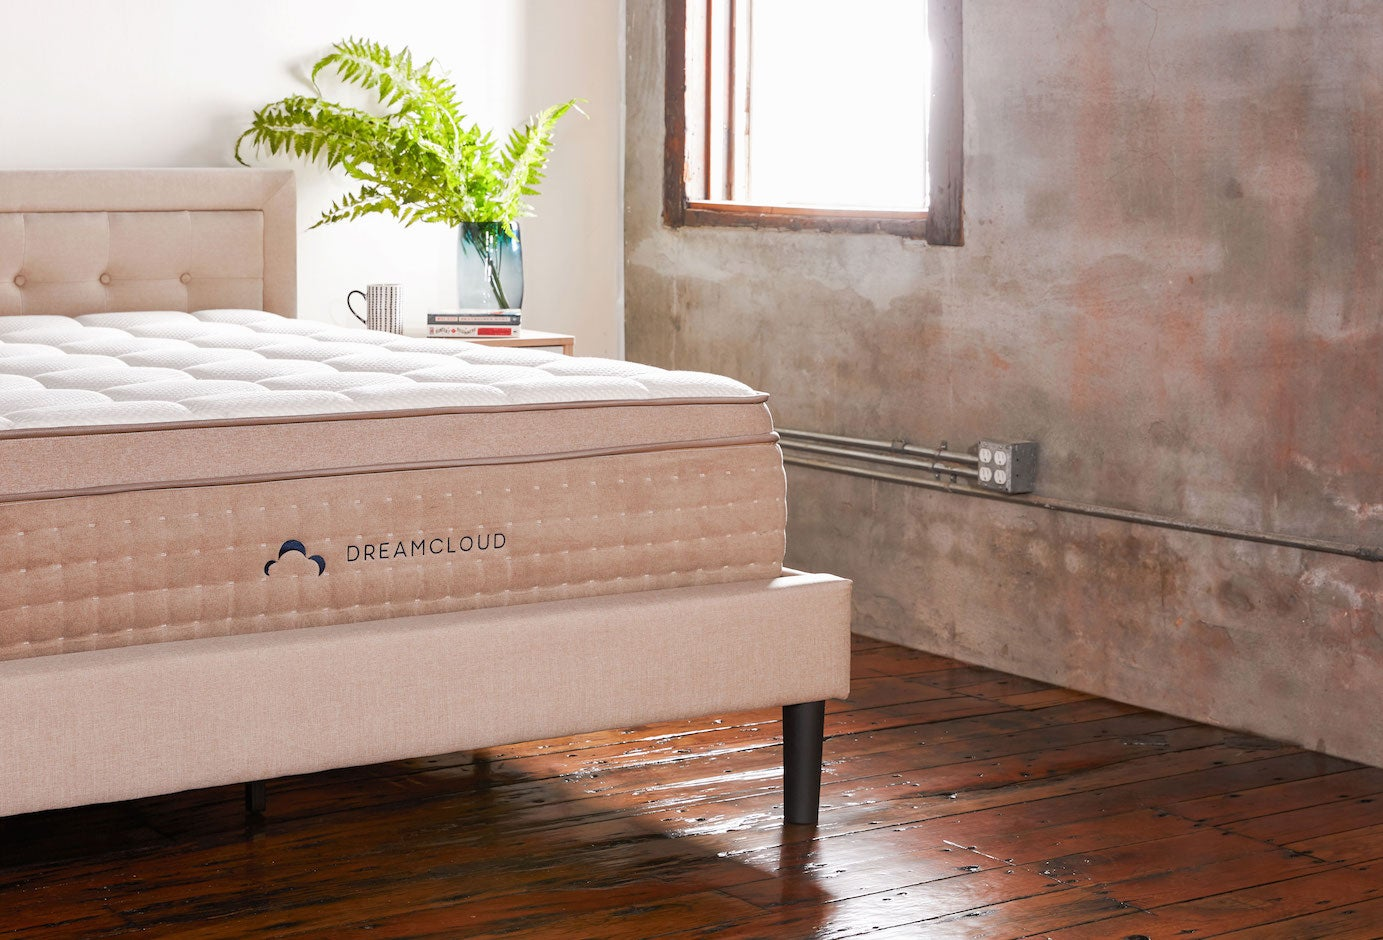 Dreamcloud's upholstered bedframe with headboard